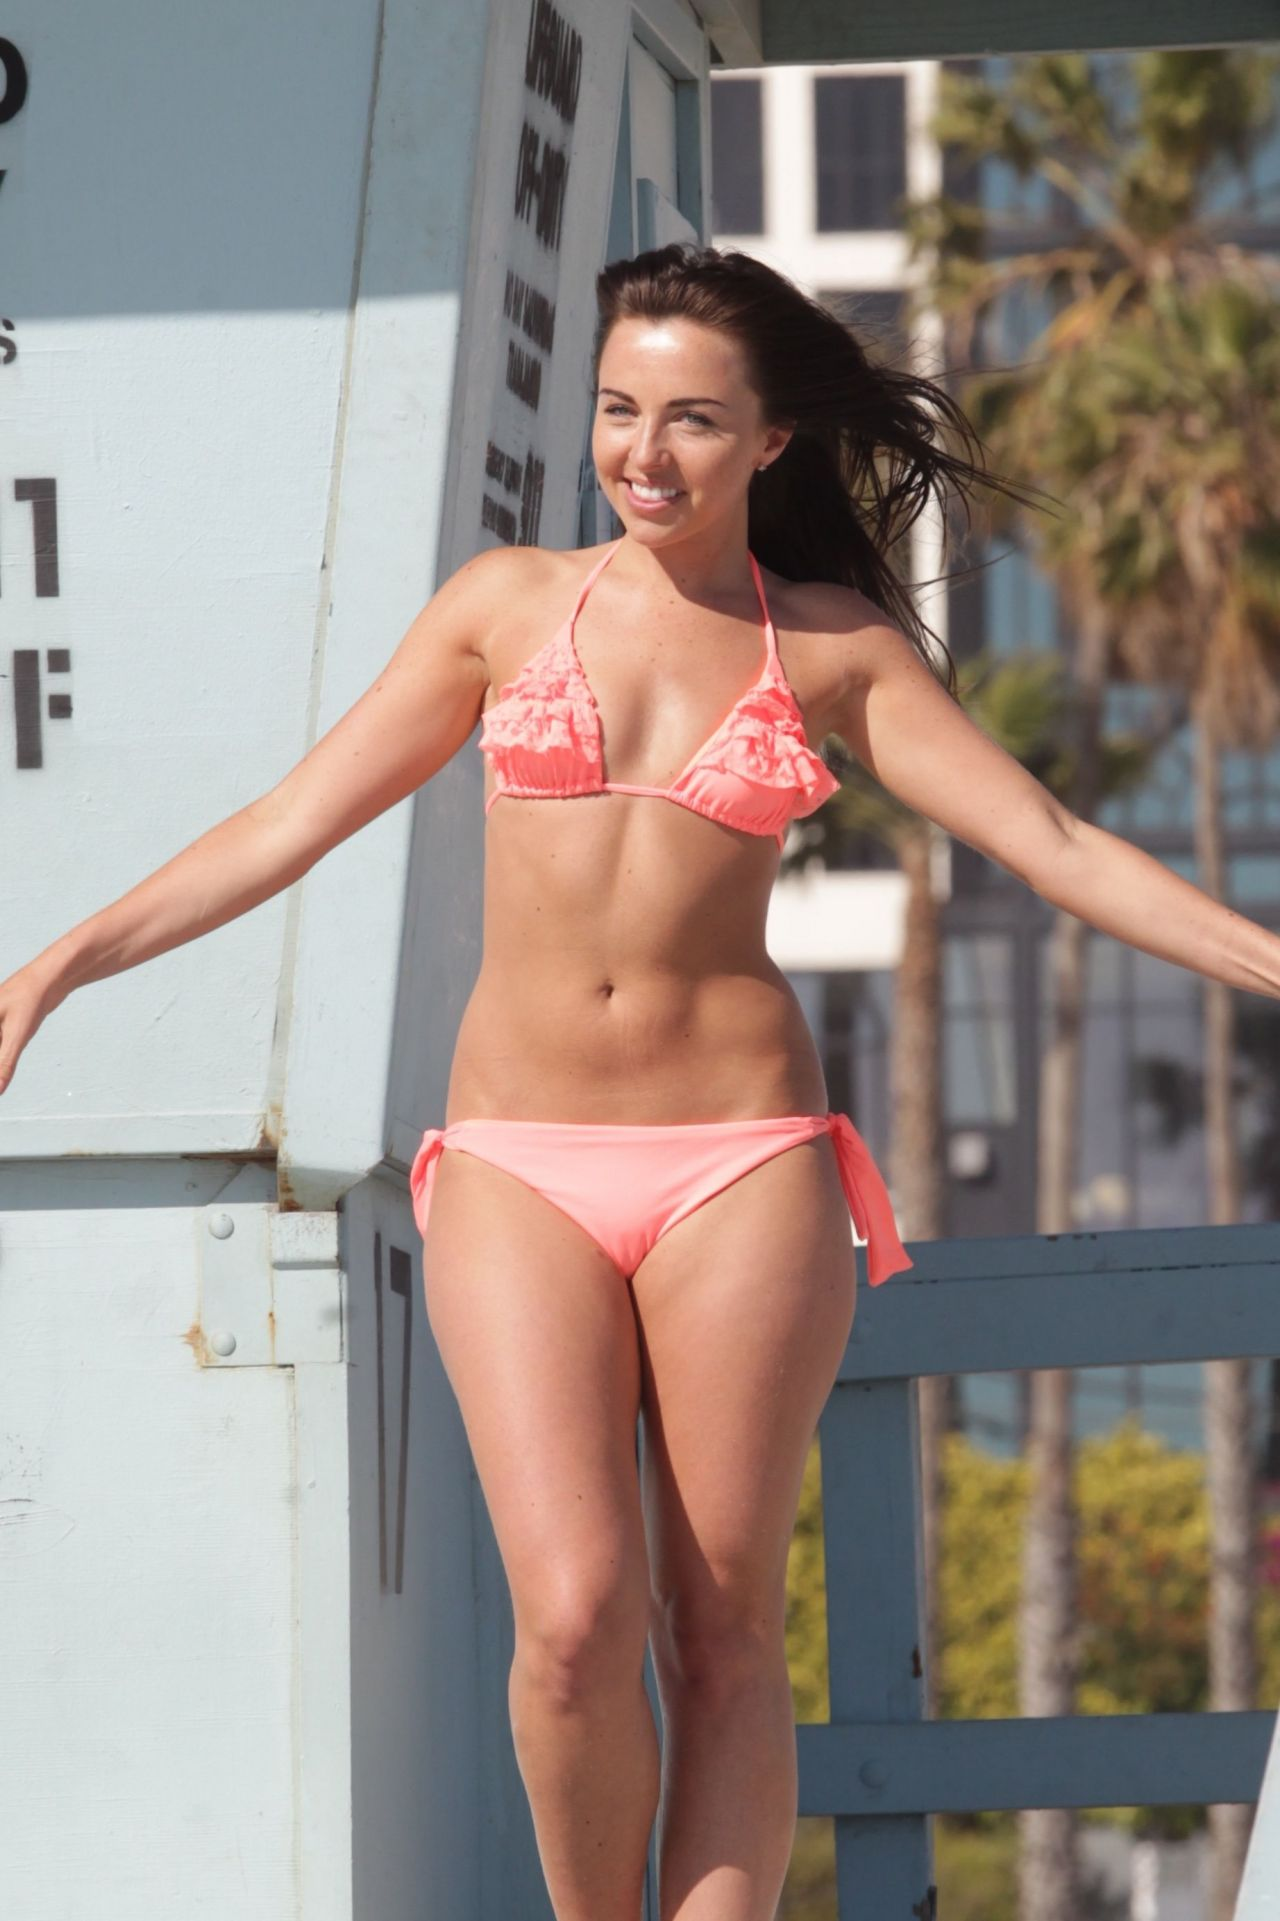 Louisa Lytton Amp Caroline Pearce In A Bikini Santa Monica